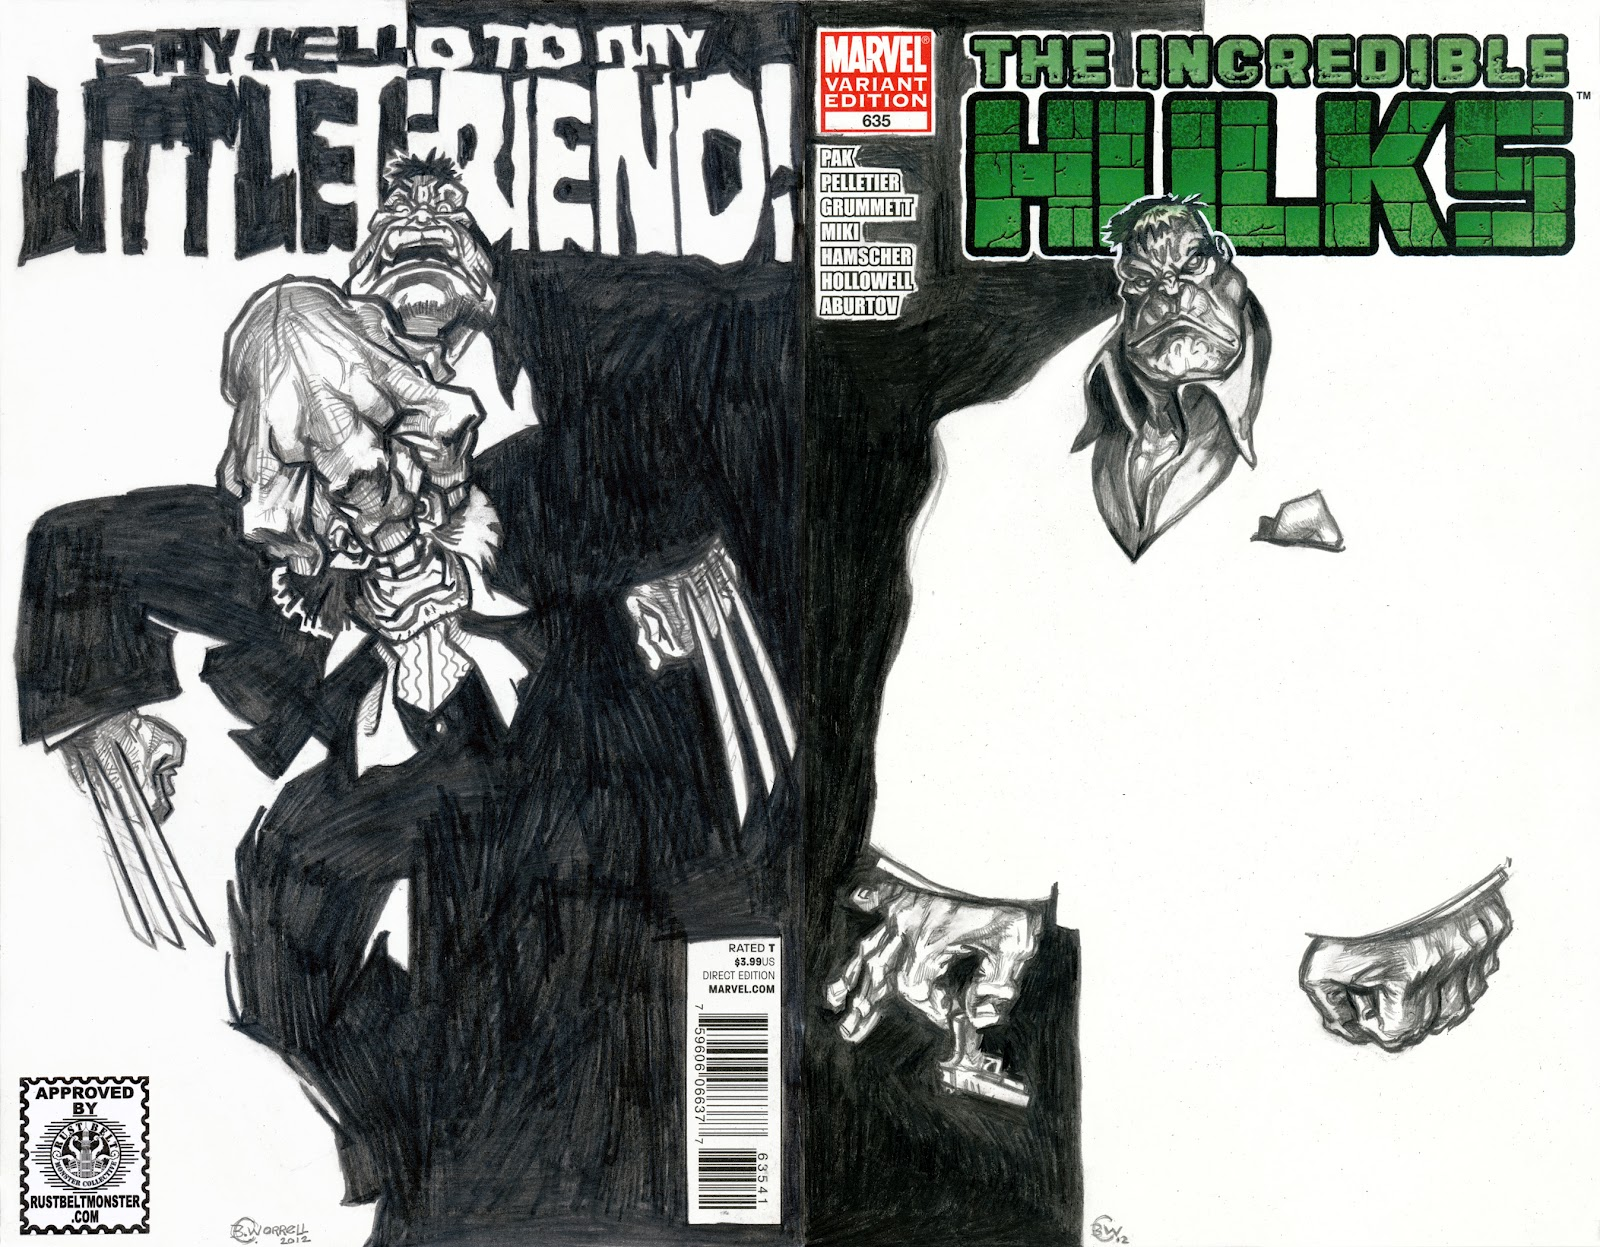 Hulk+full+cover.jpg